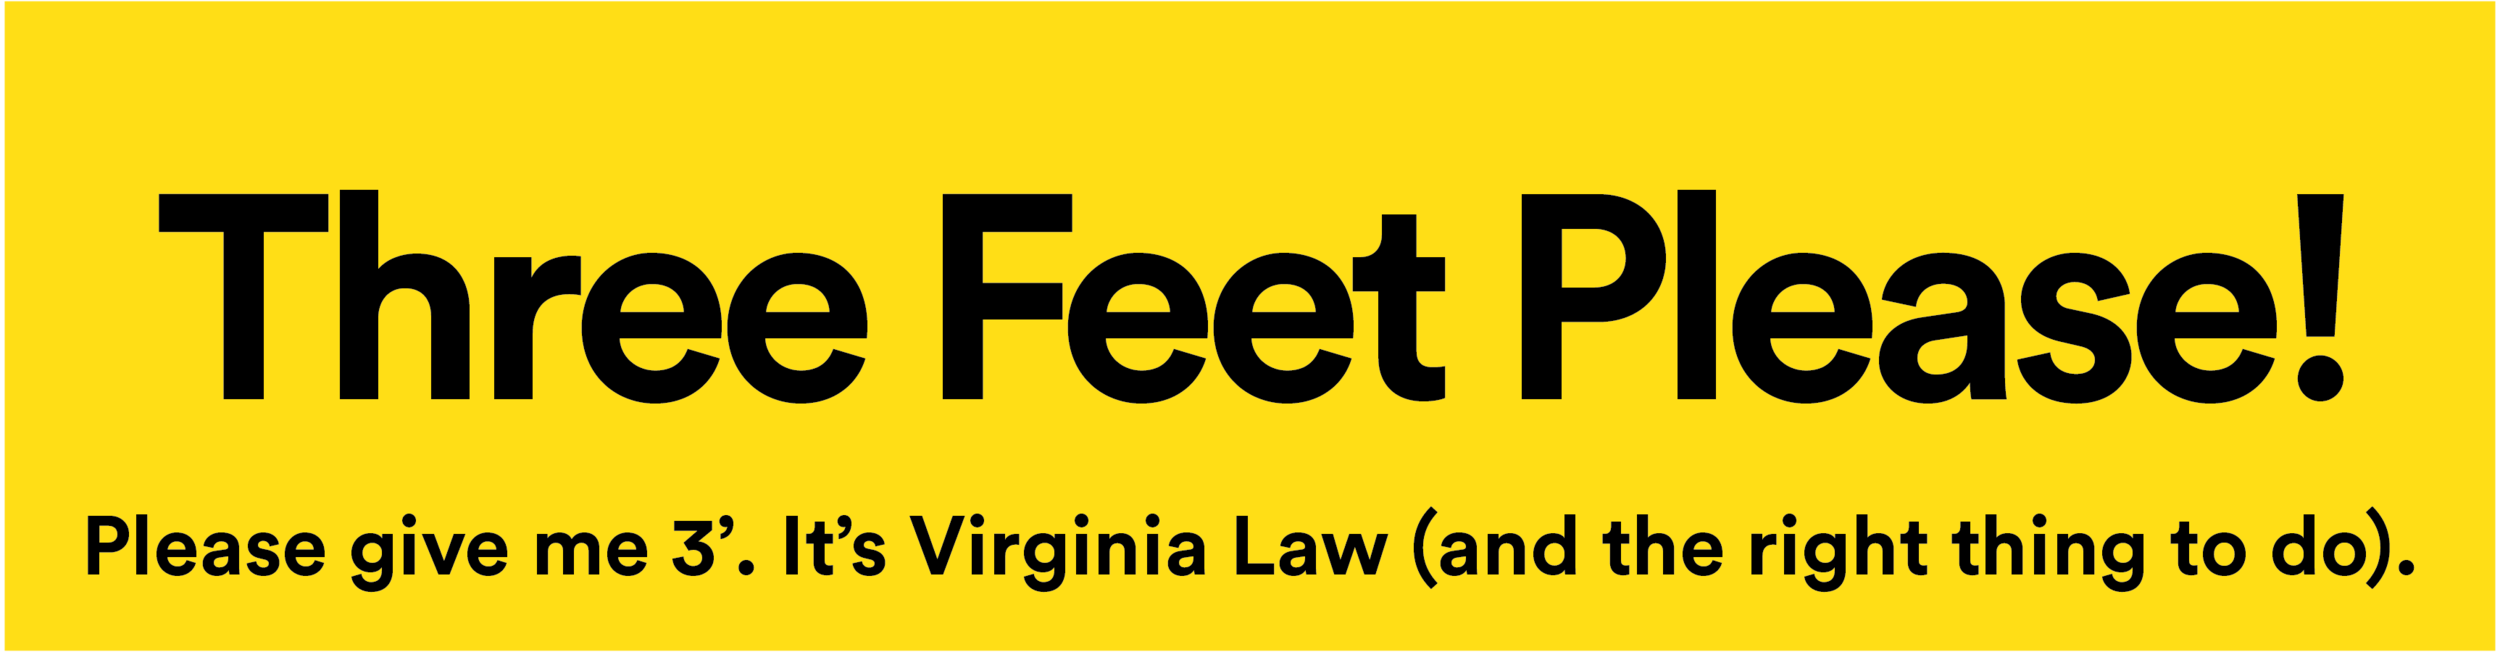 3feetPLEASE-18.png